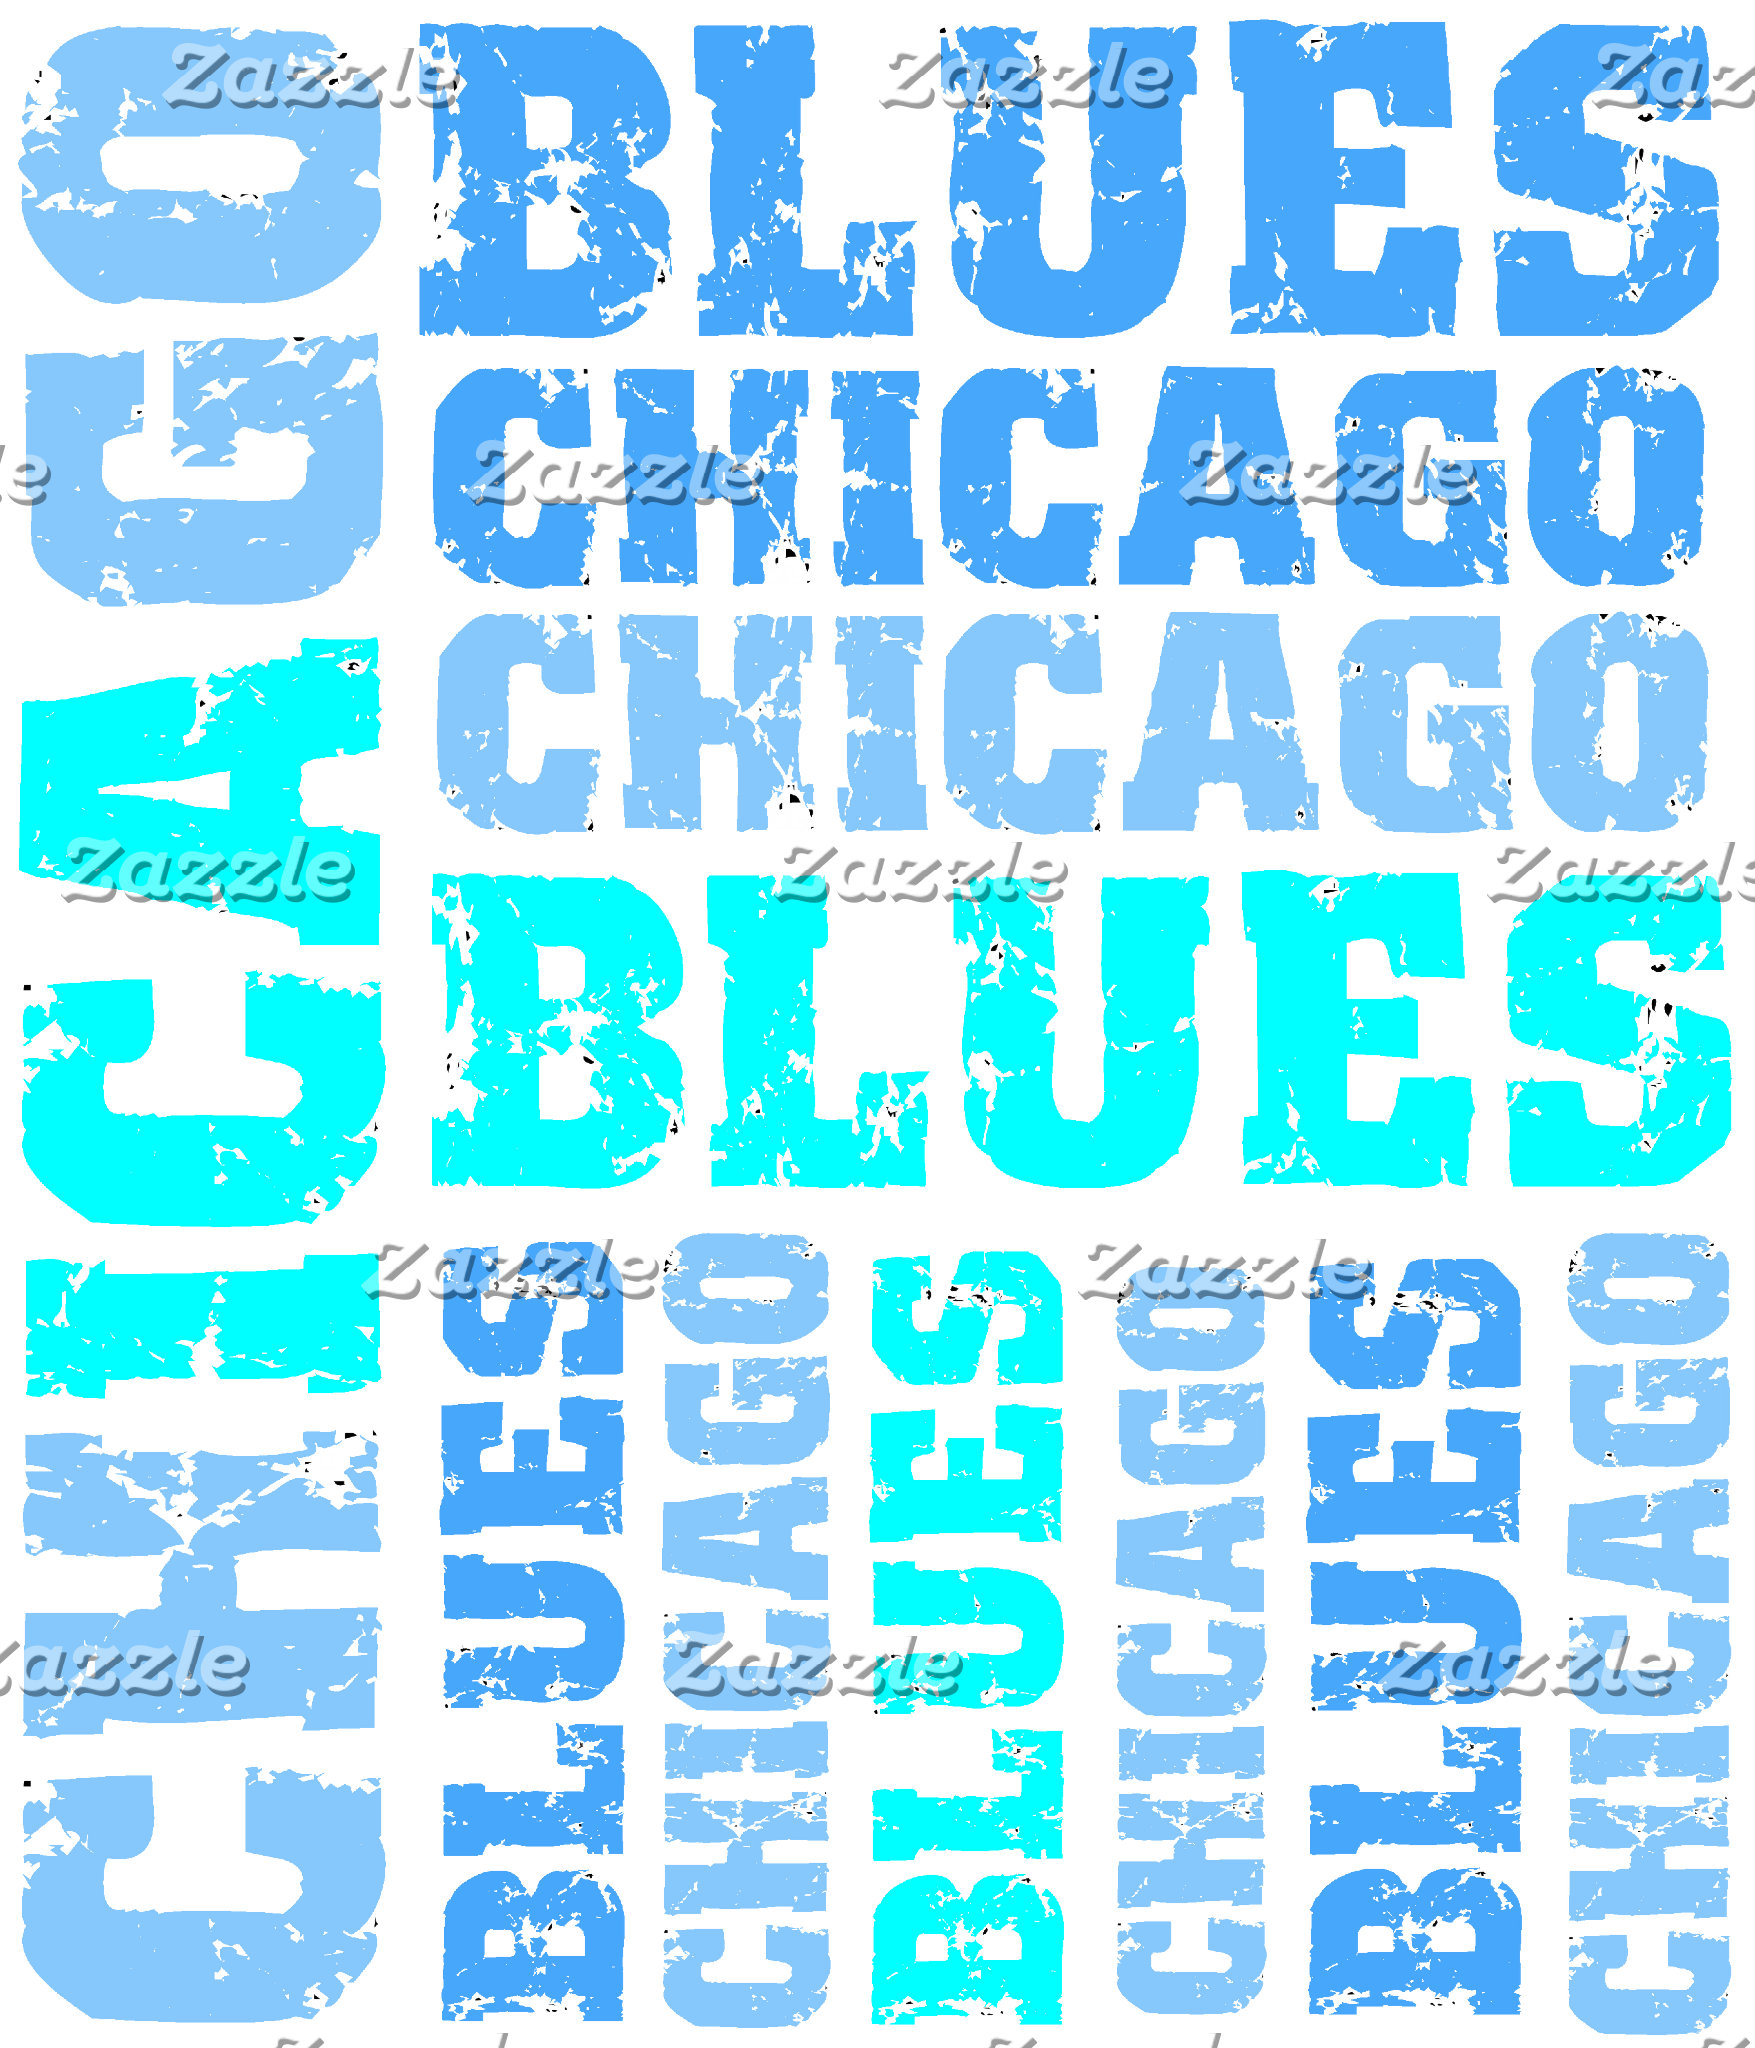 CHICAGO BLUES 4